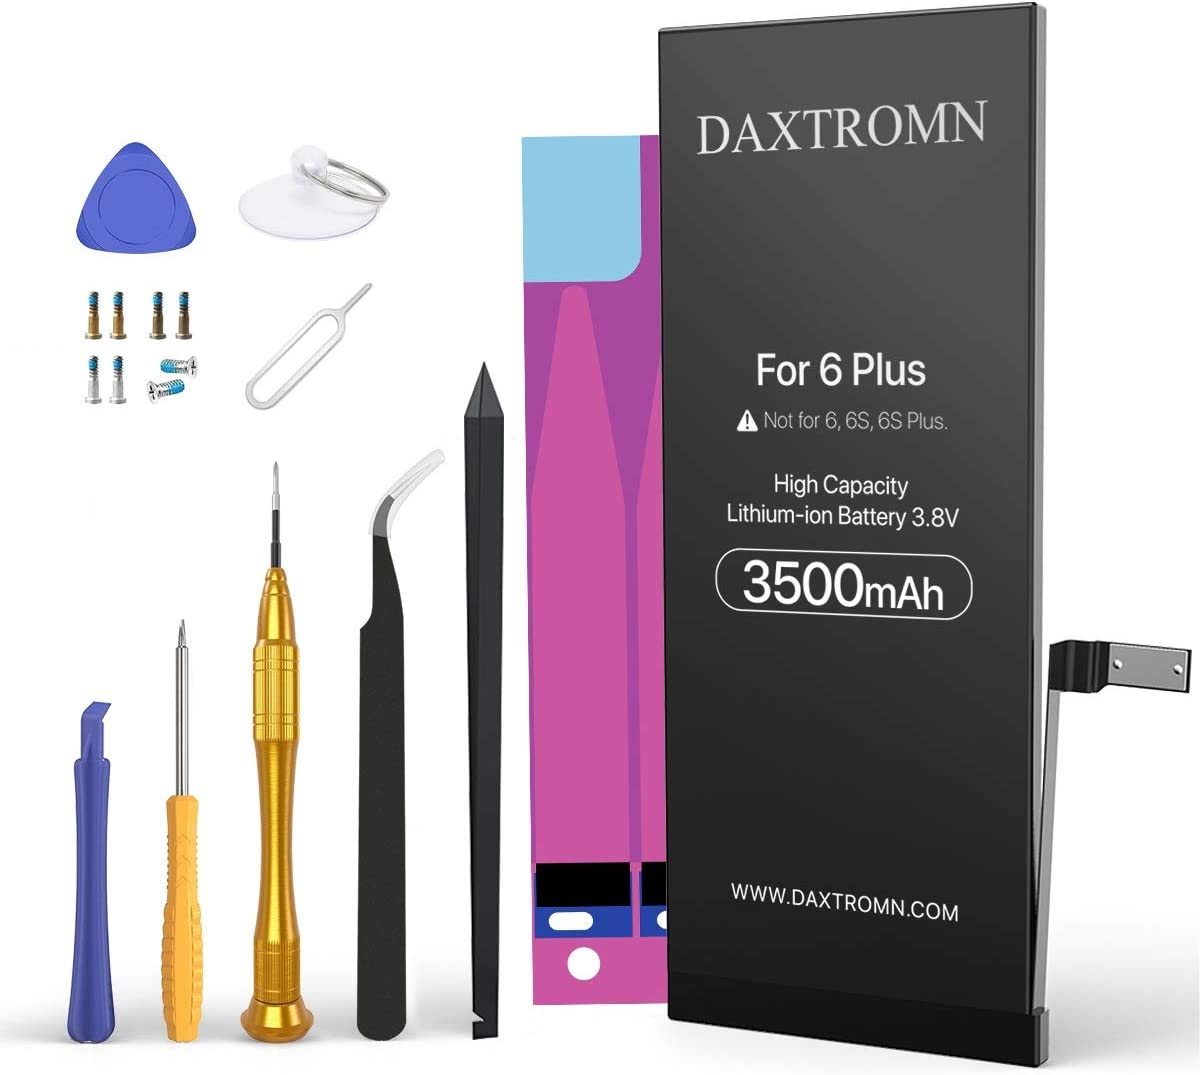 DAXTROMN 3500mAh Battery for iPhone 6 Plus, High Capacity Replacement Battery 0 Cycle, with Complete Repair Tool Kits and Adhesive Strips - 24-Month Warr